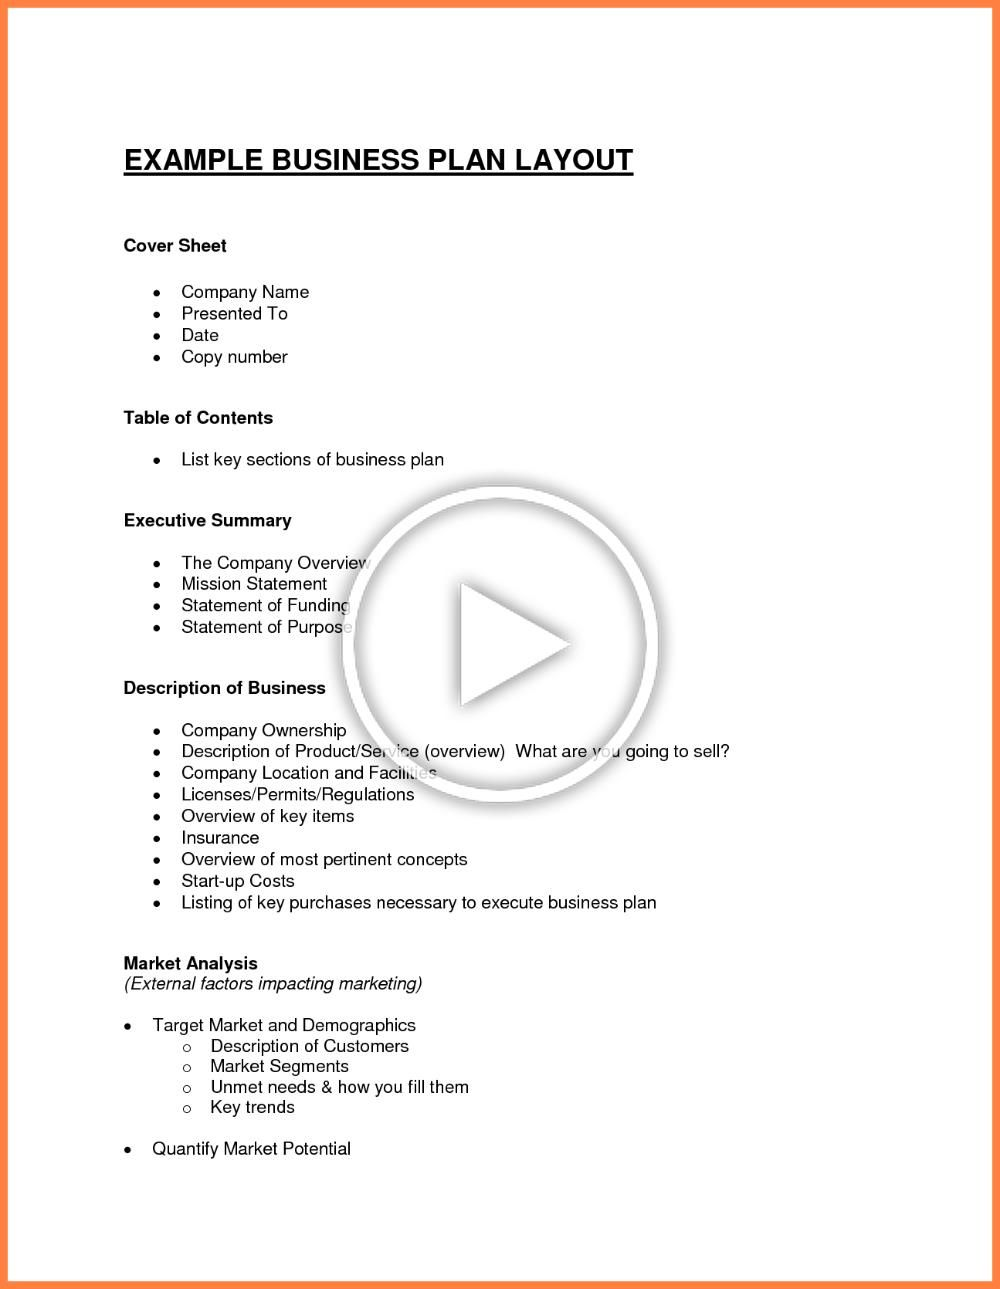 Industry Analysis Ness Plan And Market Plans Sample Business Nice